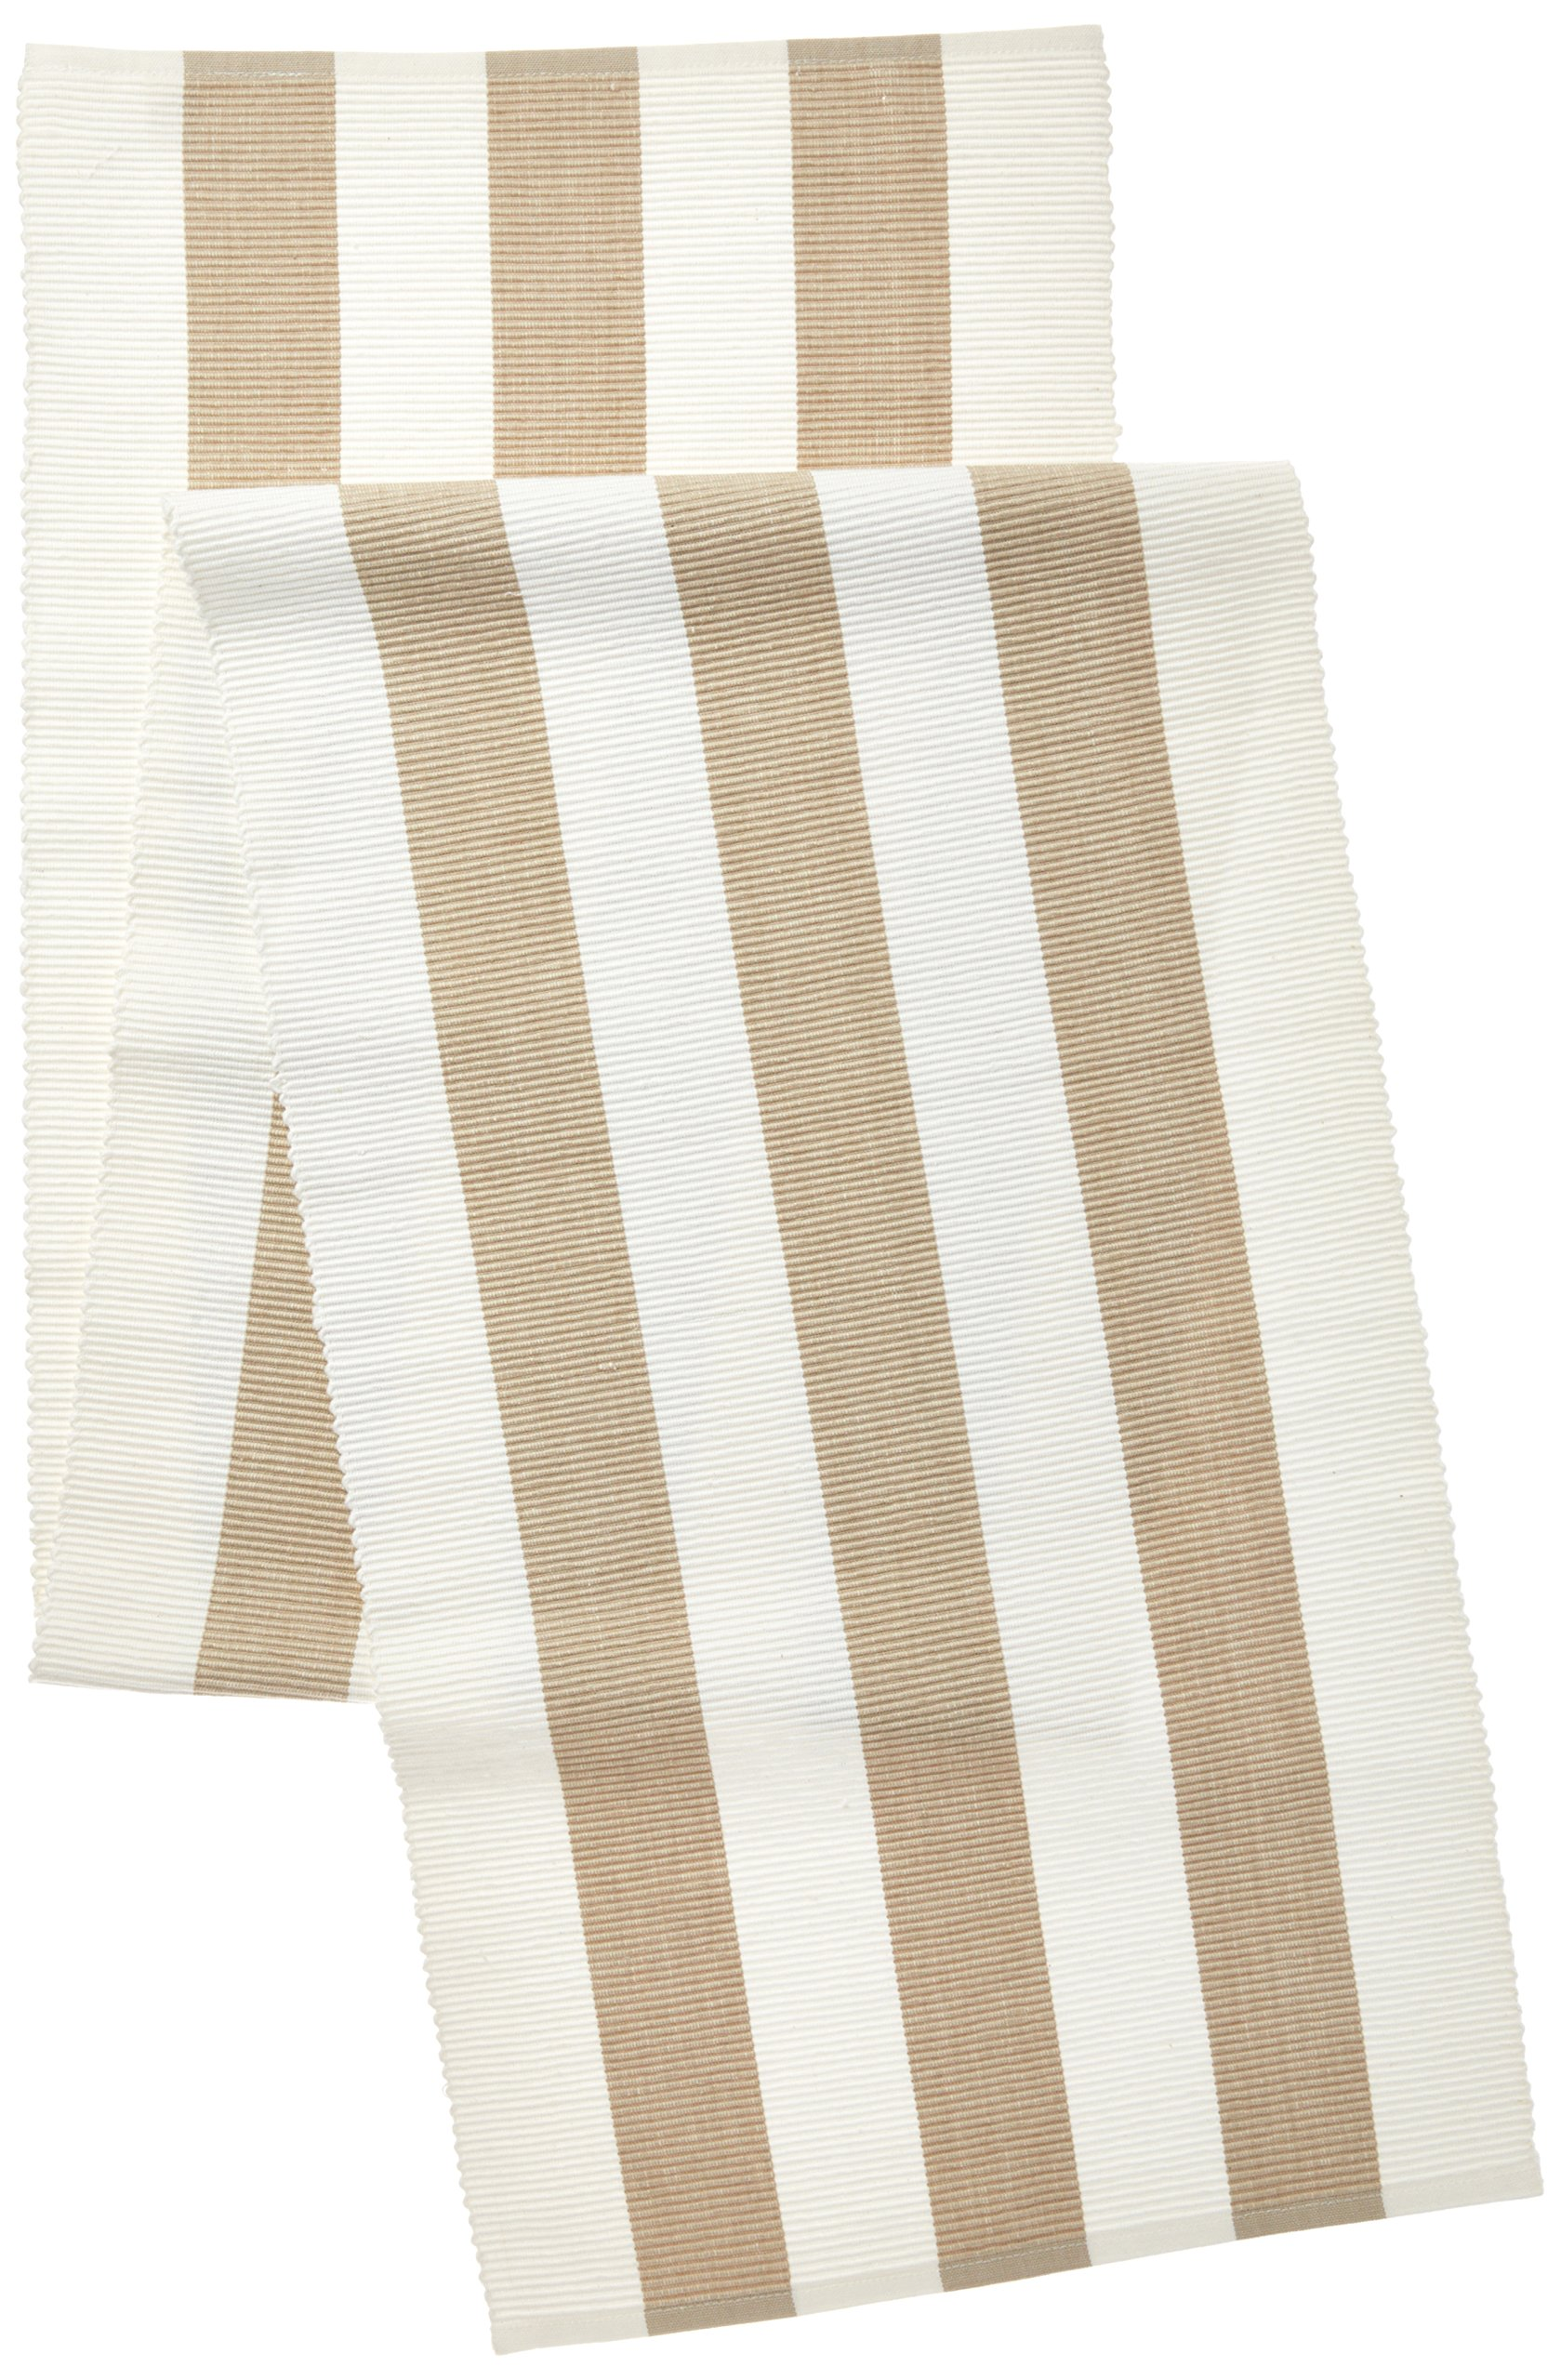 SARO LIFESTYLE Classic Stripe Ribbed Cotton Table Runner, 16'' x 72'', Taupe